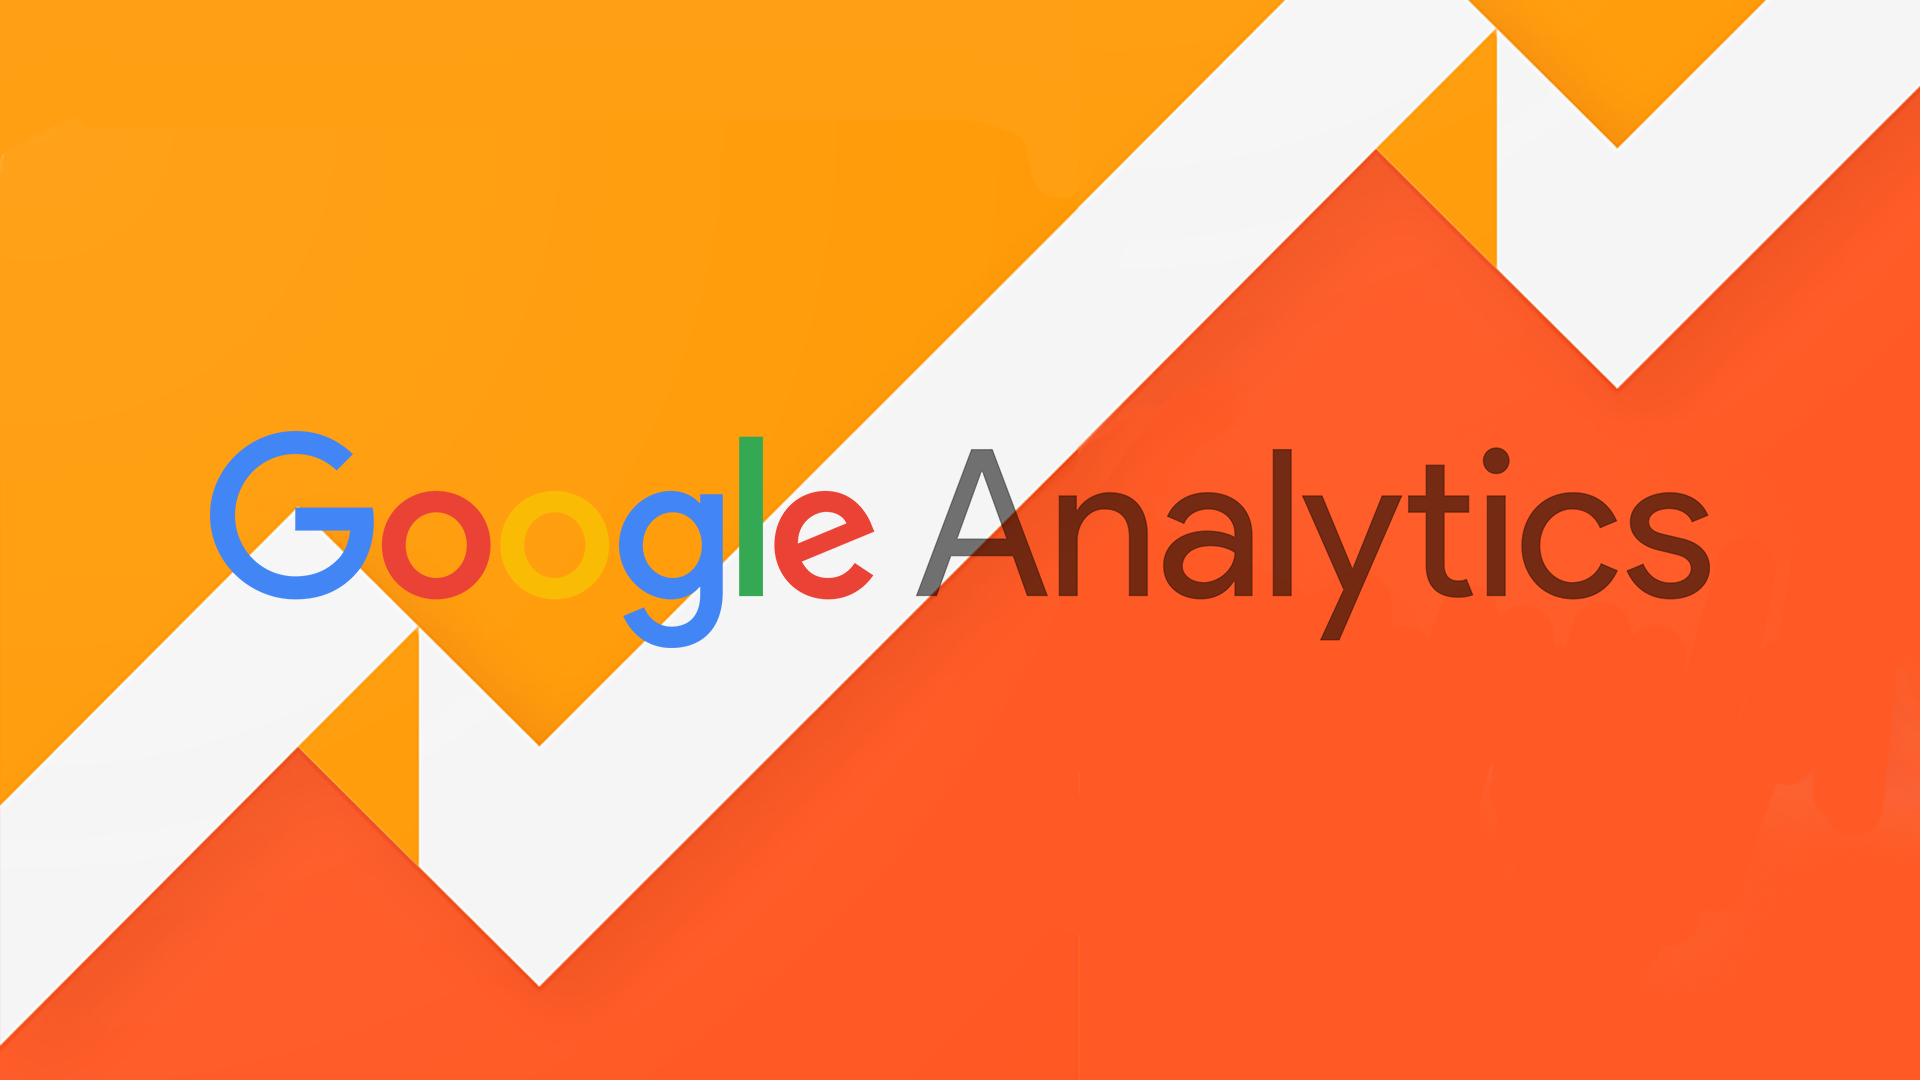 google-analytics-name2-1920